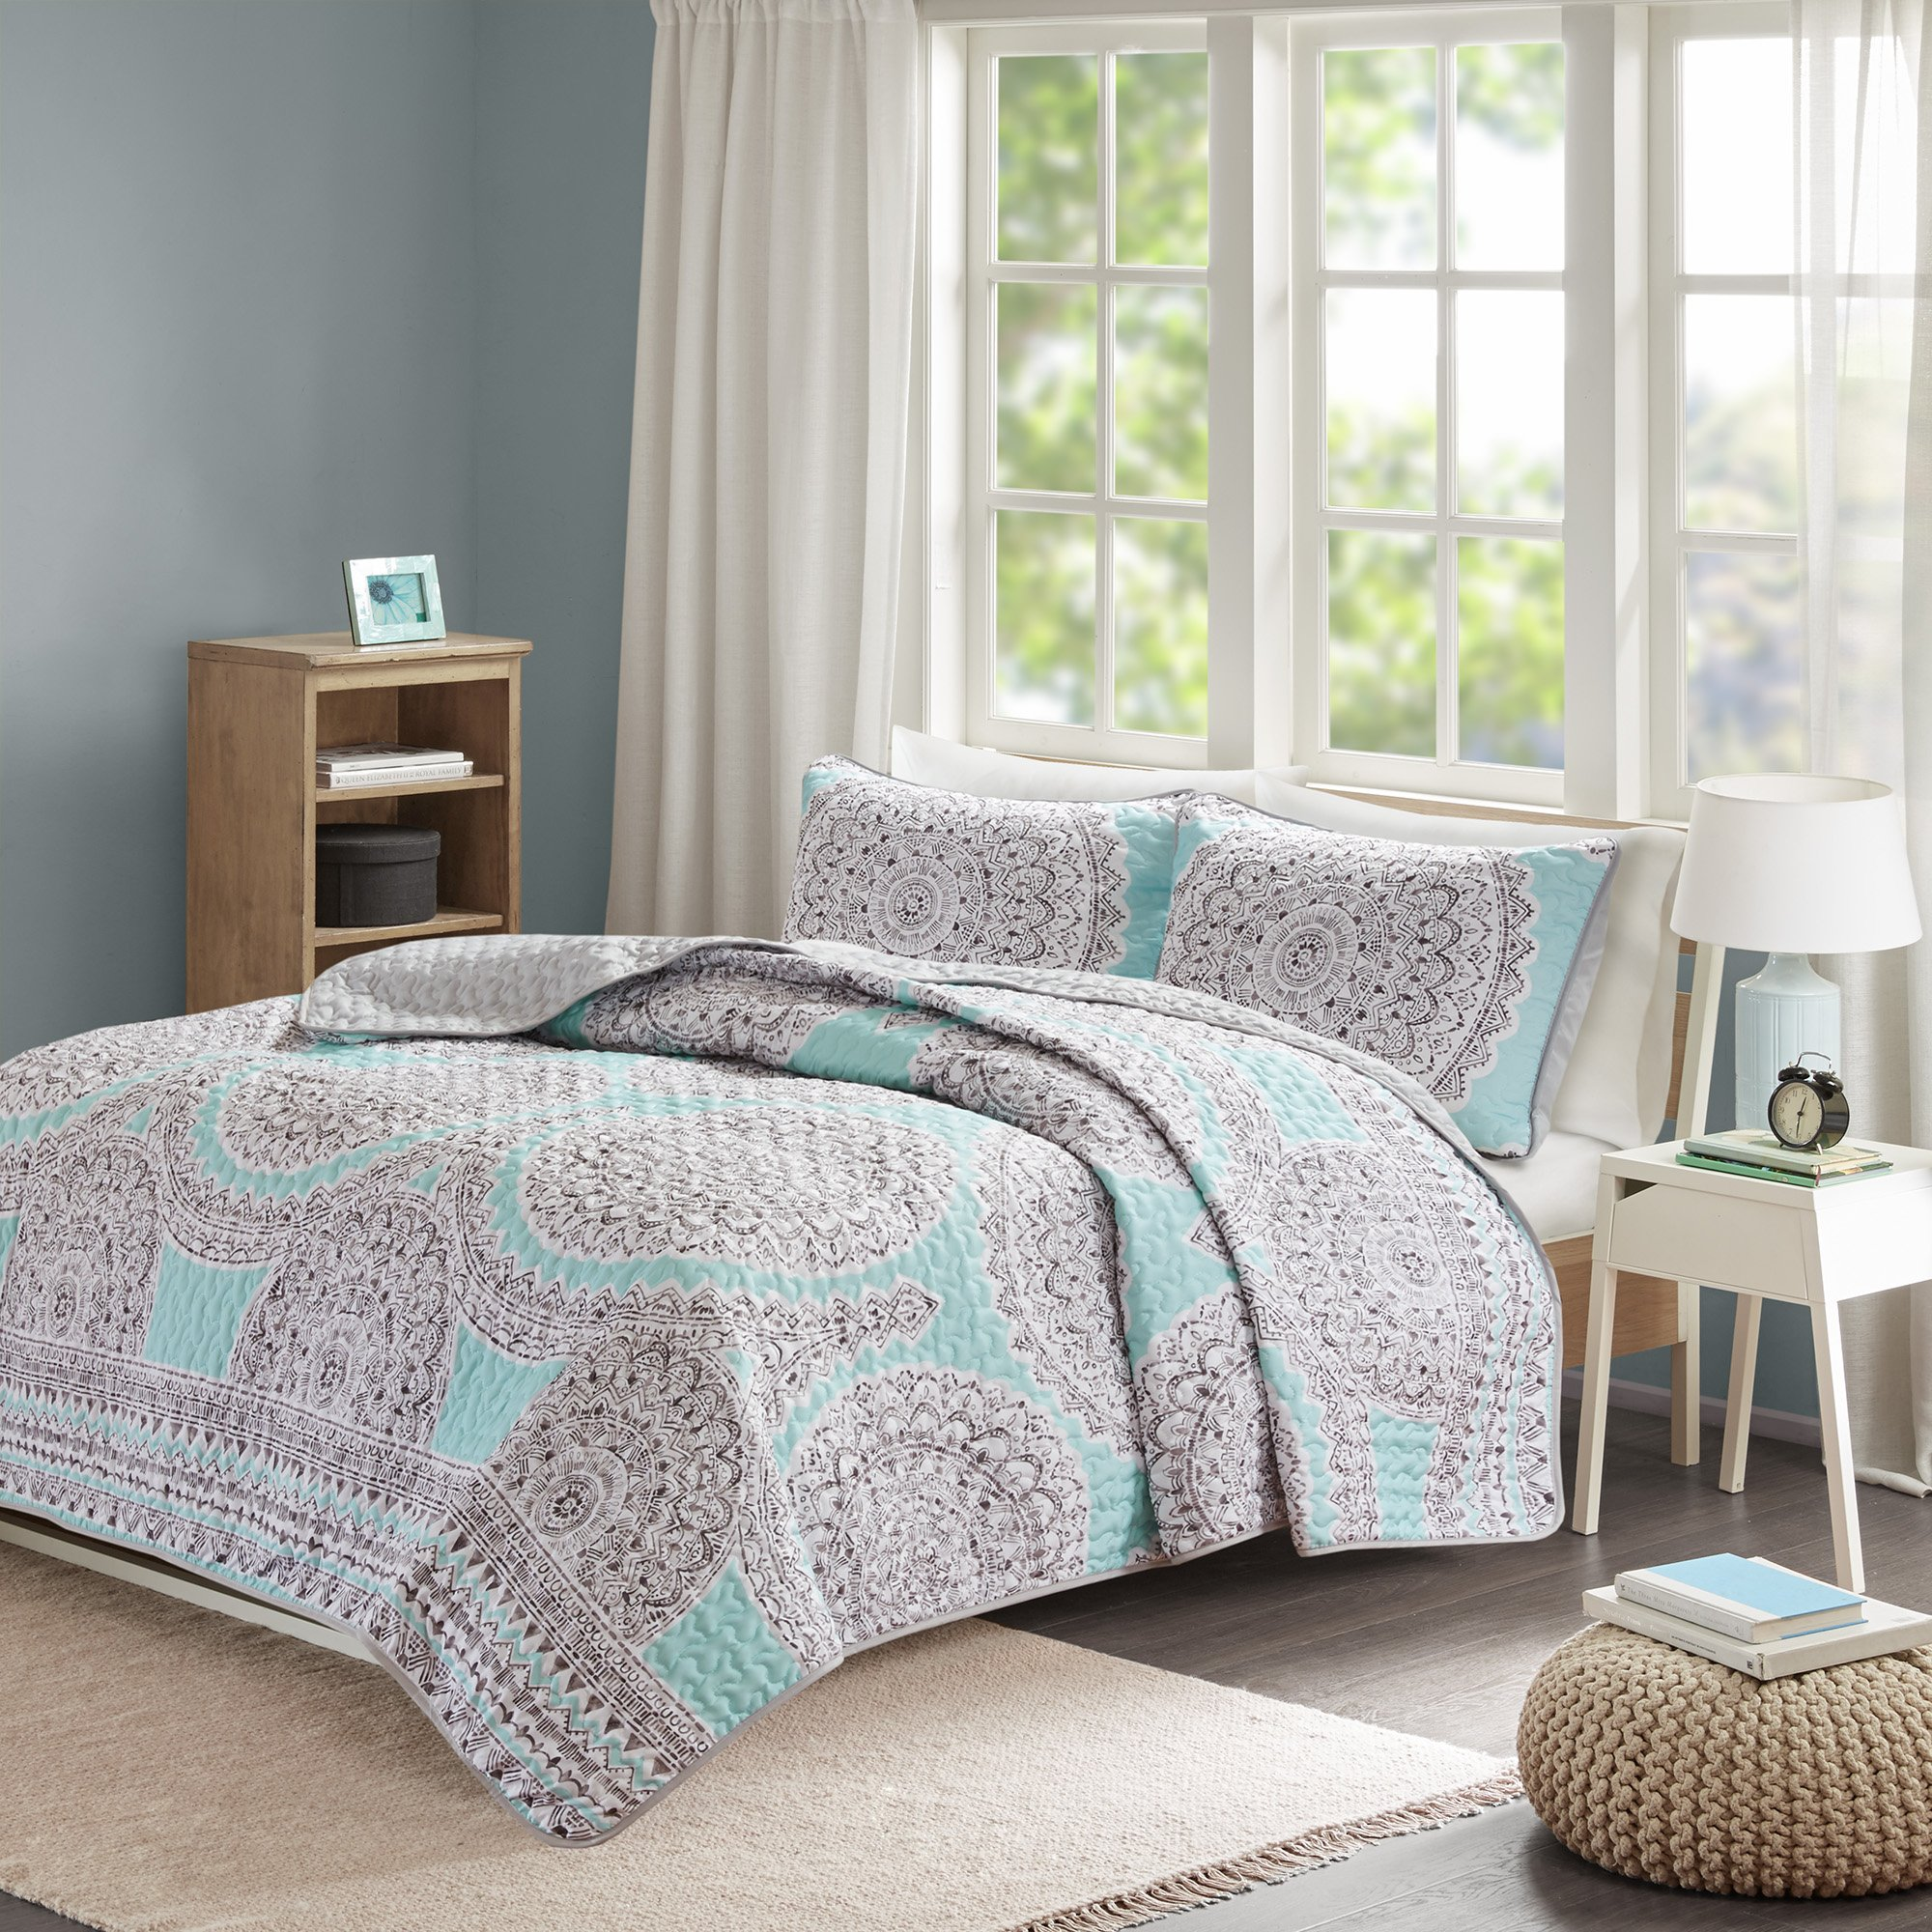 Comfort Spaces Queen Quilt/Coverlet Set - 3 Pieces - Blue/Aqua/Grey - Printed Medallions Pattern - Lightweight Spring And Summer Girls Bedding Sets Full Queen- Bedspread Set - Adele